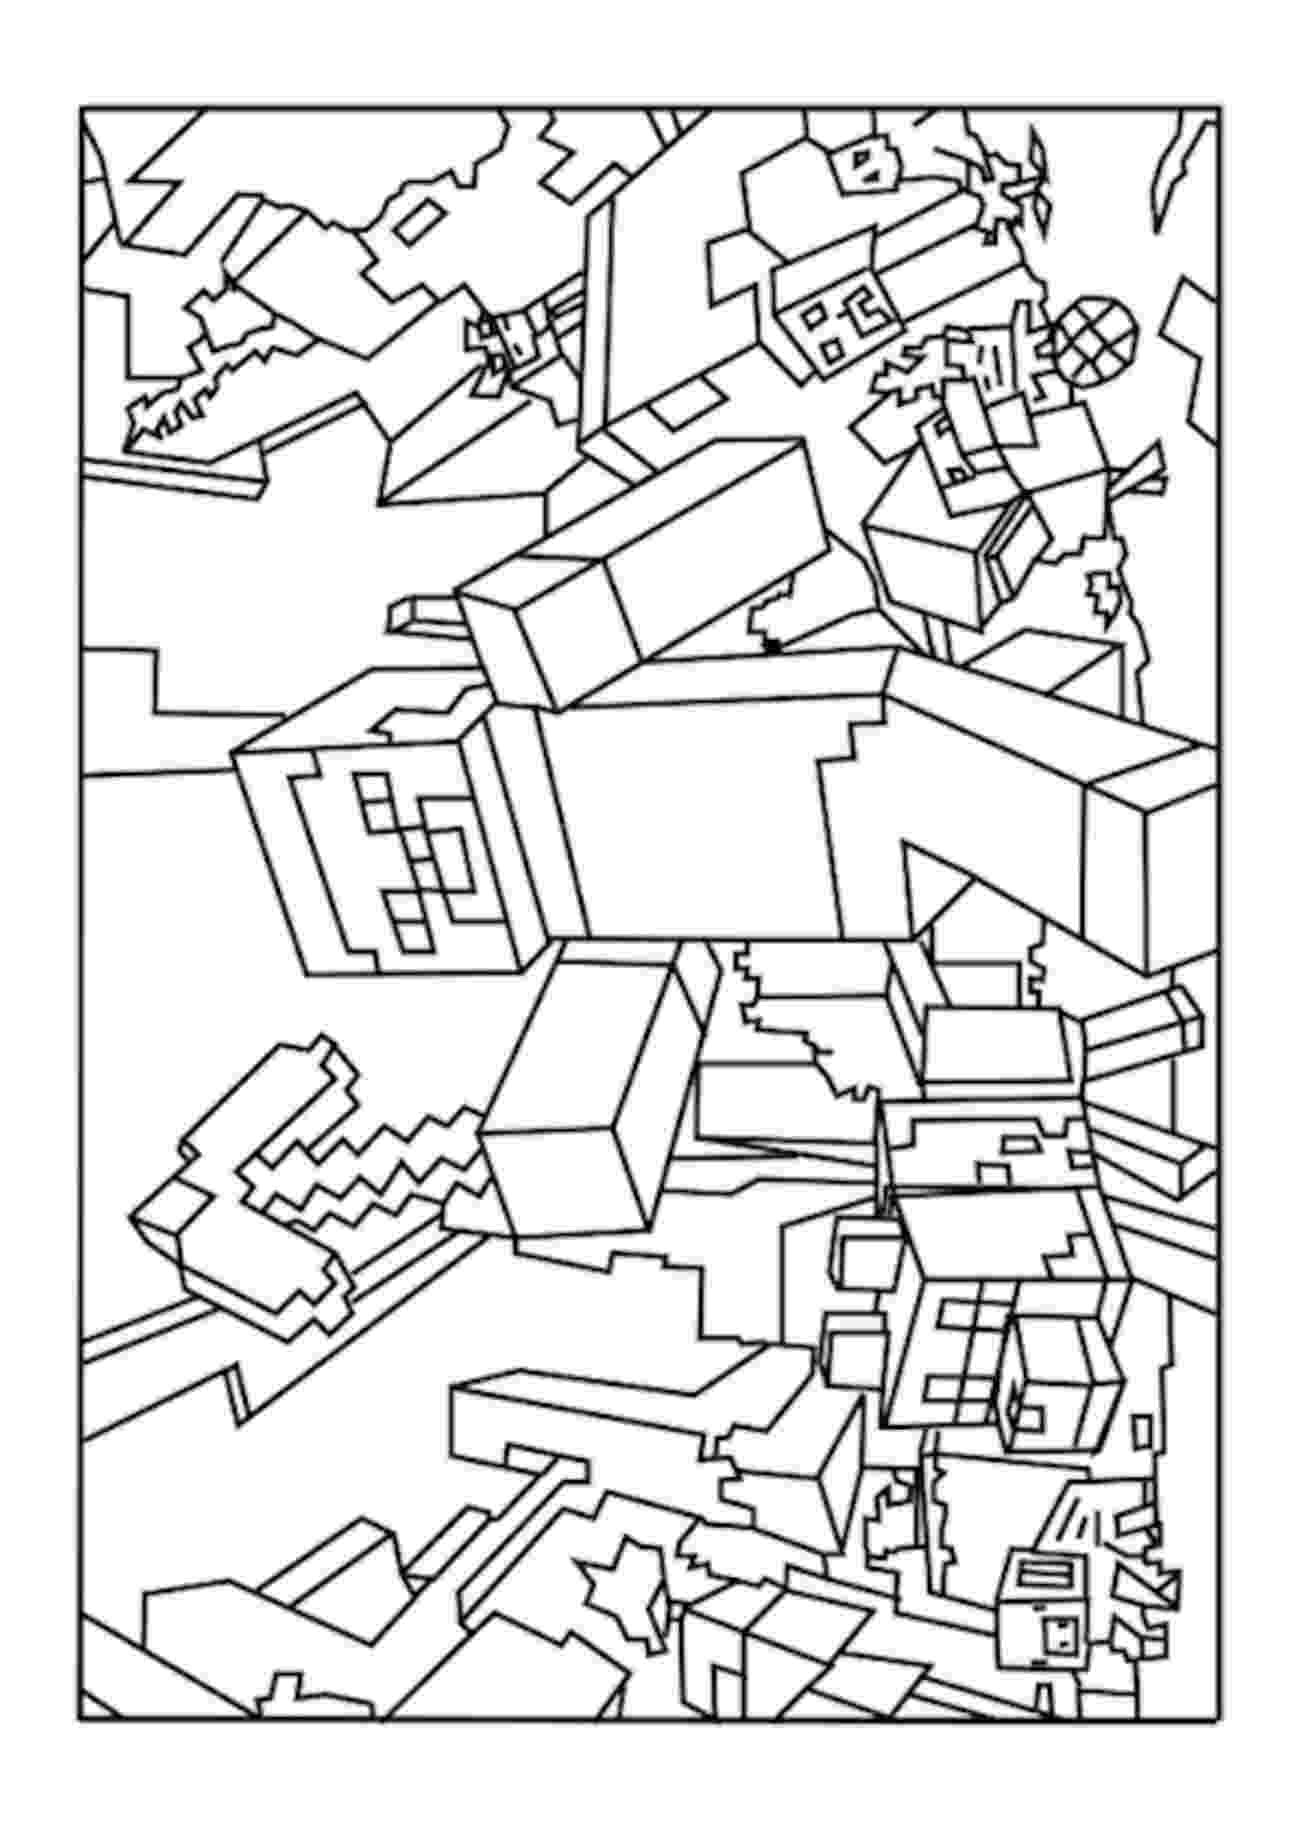 mincraft coloring pages printable minecraft coloring pages coloring home pages coloring mincraft